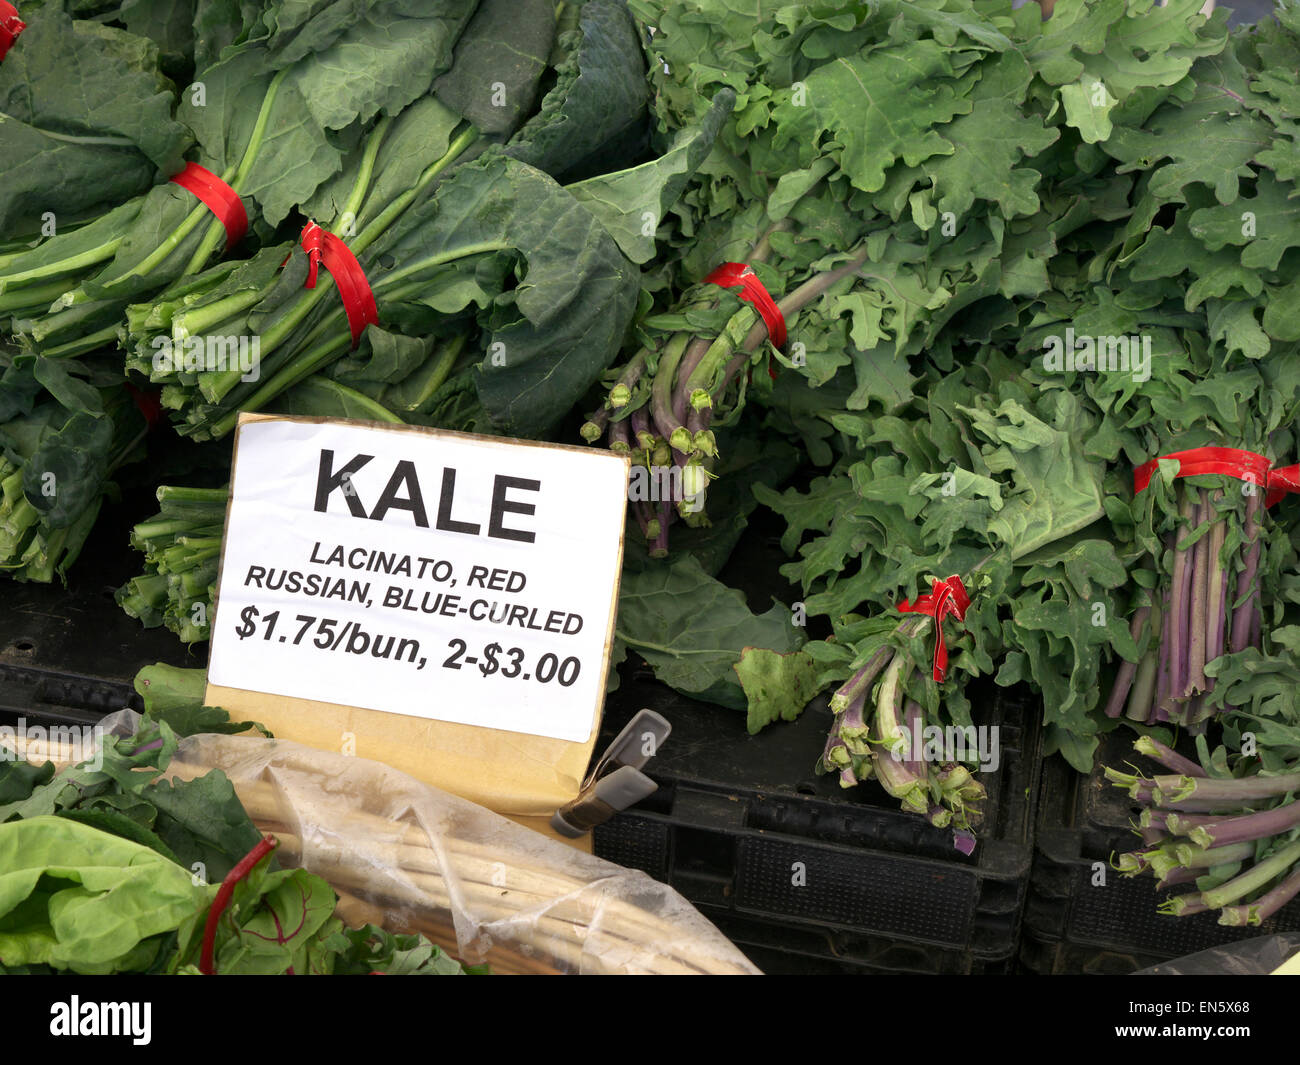 Loose bundles of Kale 'lacinato, red Russian blue-curled' on display for sale at Farmers Market Embarcadero - Stock Image